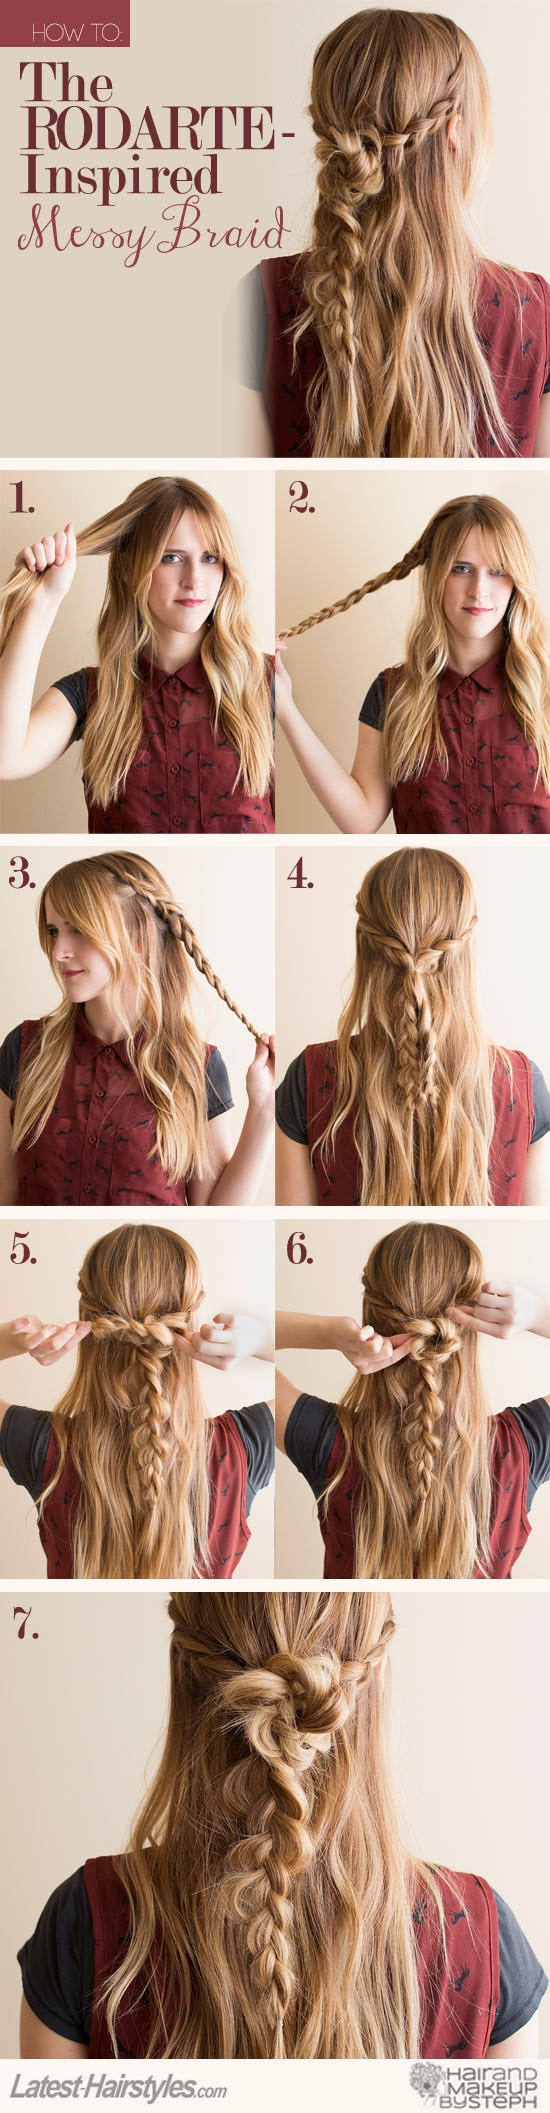 Braided Style for Straight Hair